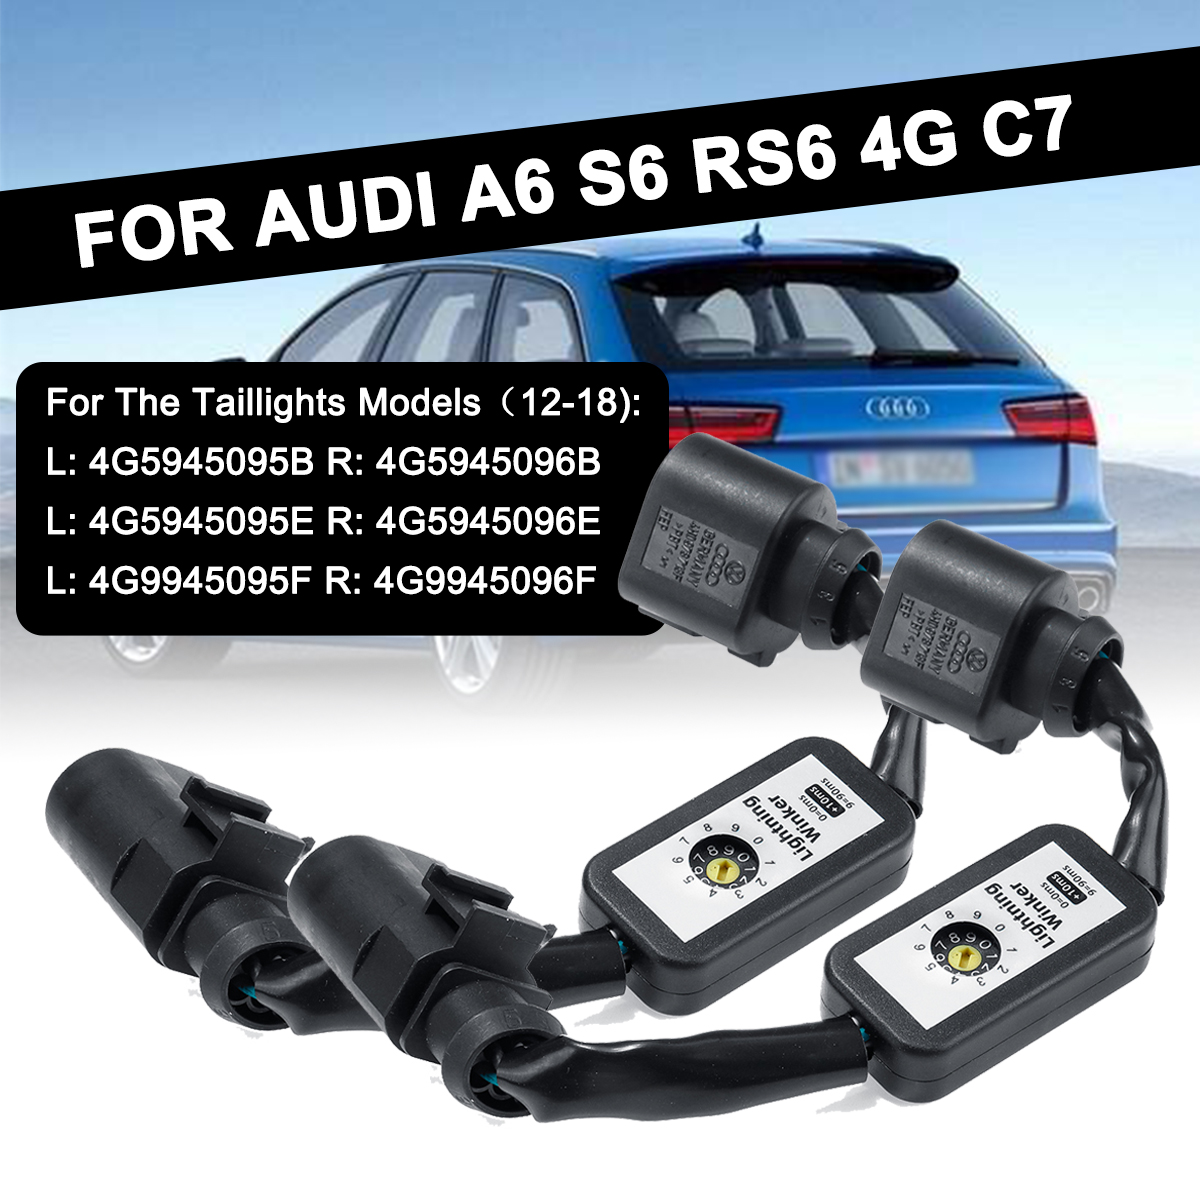 2X Dynamic Turn Signal Indicator <font><b>LED</b></font> Taillight Add-on Module Cable Wire Harness For <font><b>AUDI</b></font> <font><b>A6</b></font> S6 RS6 4G C7 Left&Right <font><b>Tail</b></font> <font><b>Light</b></font> image